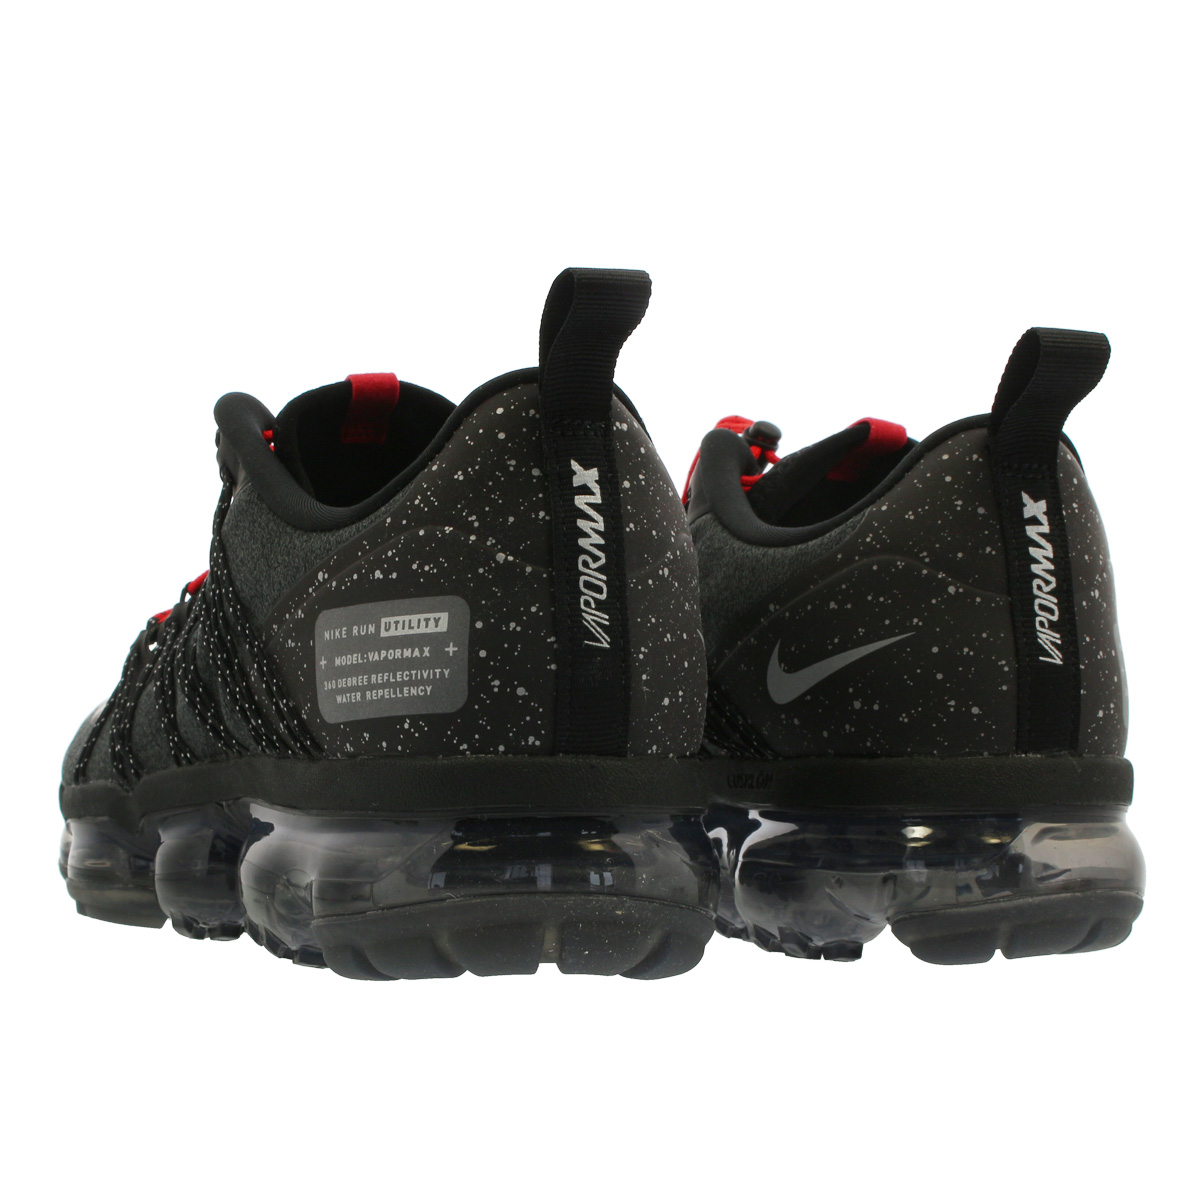 fa8c8008e9 ... NIKE AIR VAPORMAX RUN UTILITY Nike vapor max orchid utility  BLACK/REFLECT SILVER/ANTHRACITE ...